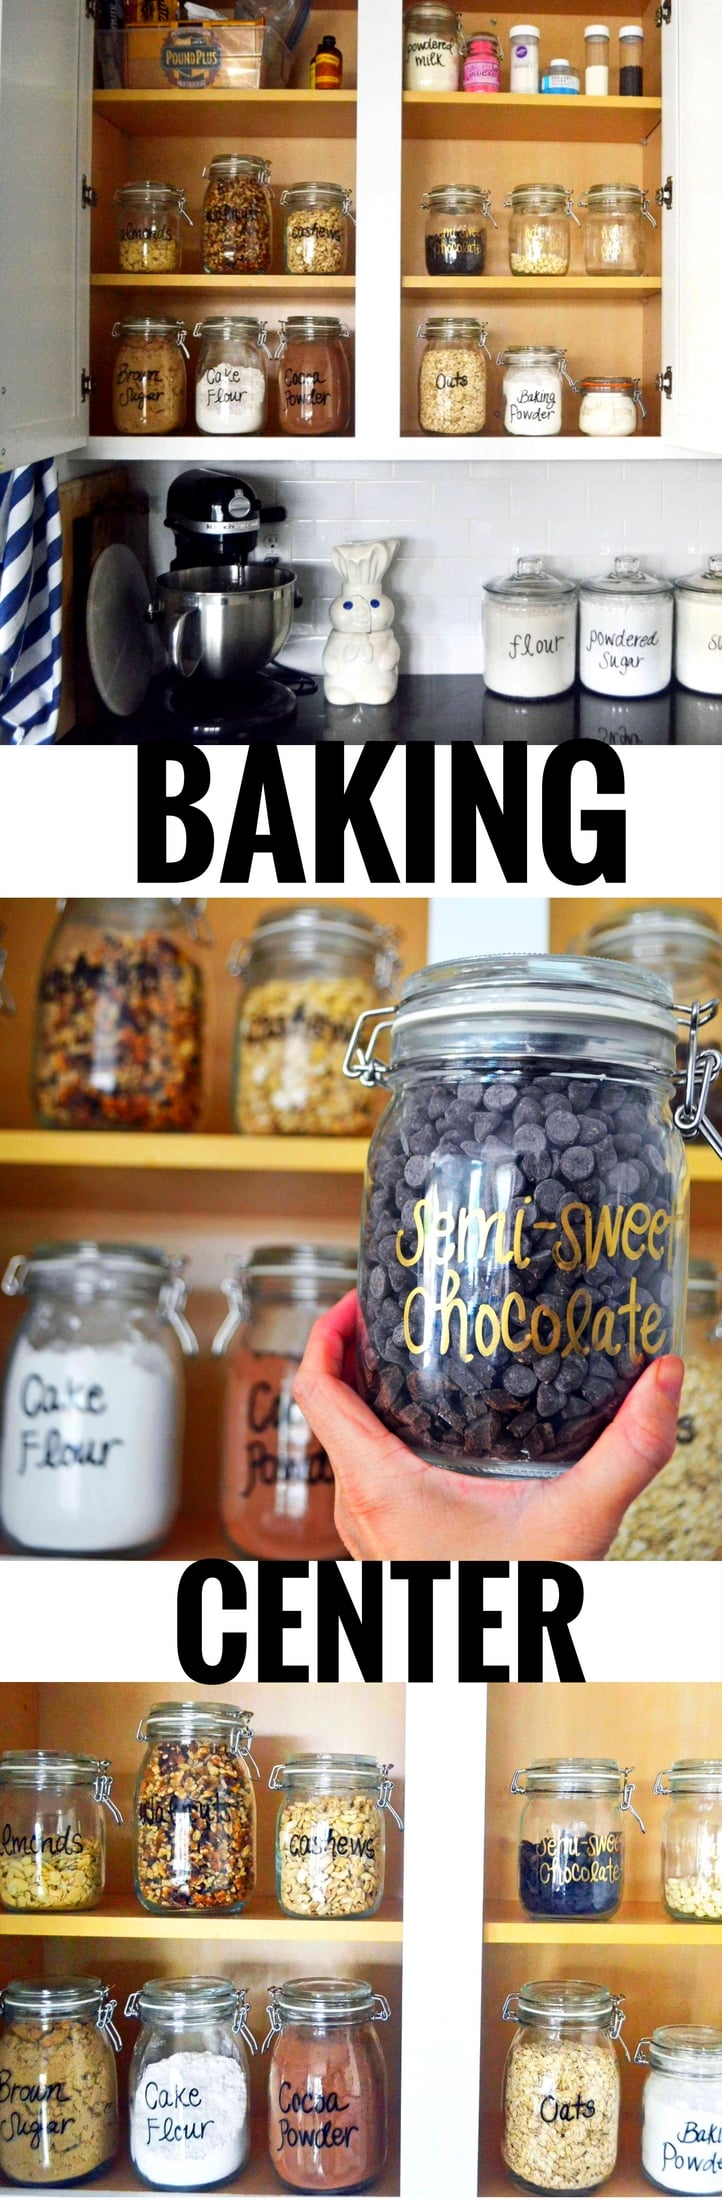 Baking Supplies Storage And Organization. Ideas On How To Create The  Ultimate Baking Center In